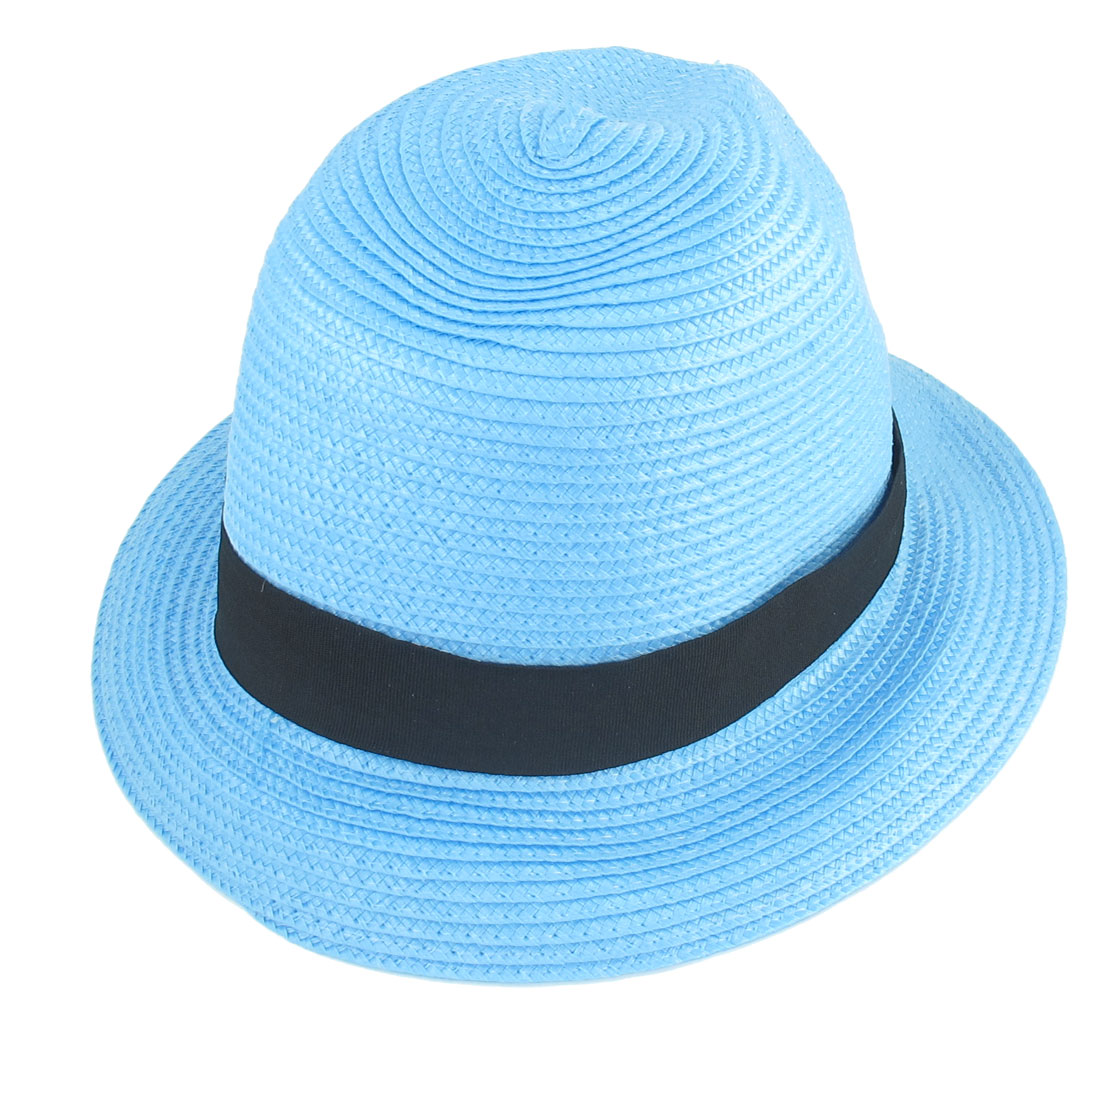 Woman Hiking Camping Strap Detailing Light Blue Tribly Hat Sun Visor